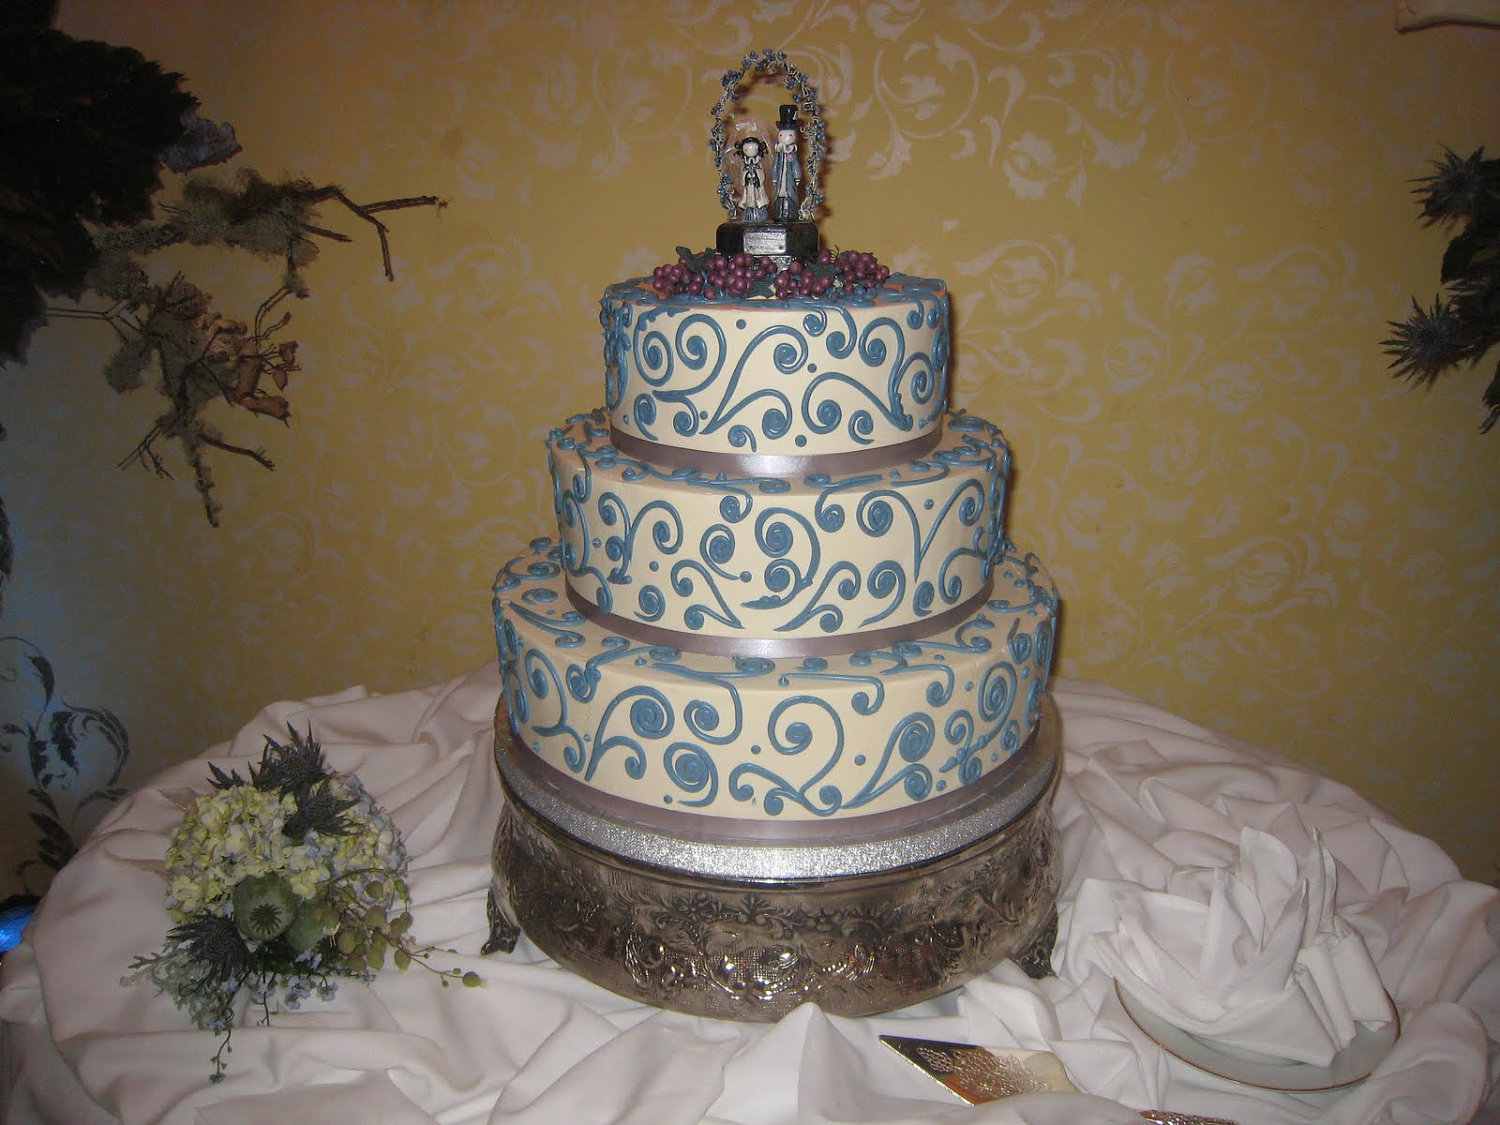 Here is the wedding cake under